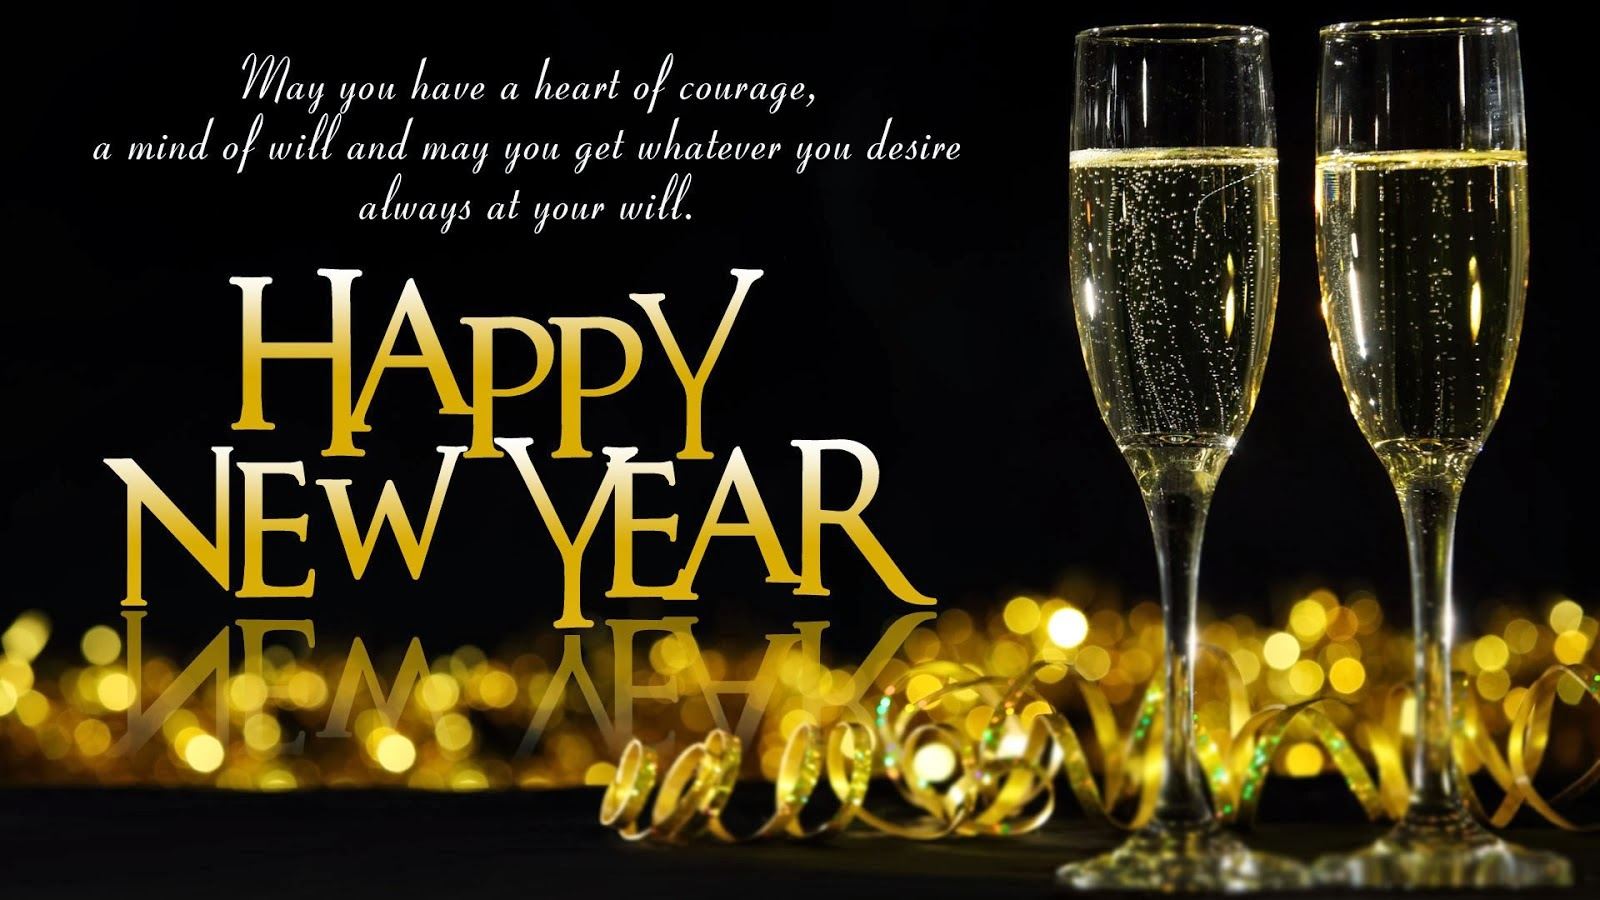 Happy New Year 2015 Quotes In Tamil Chainimage 1600x900